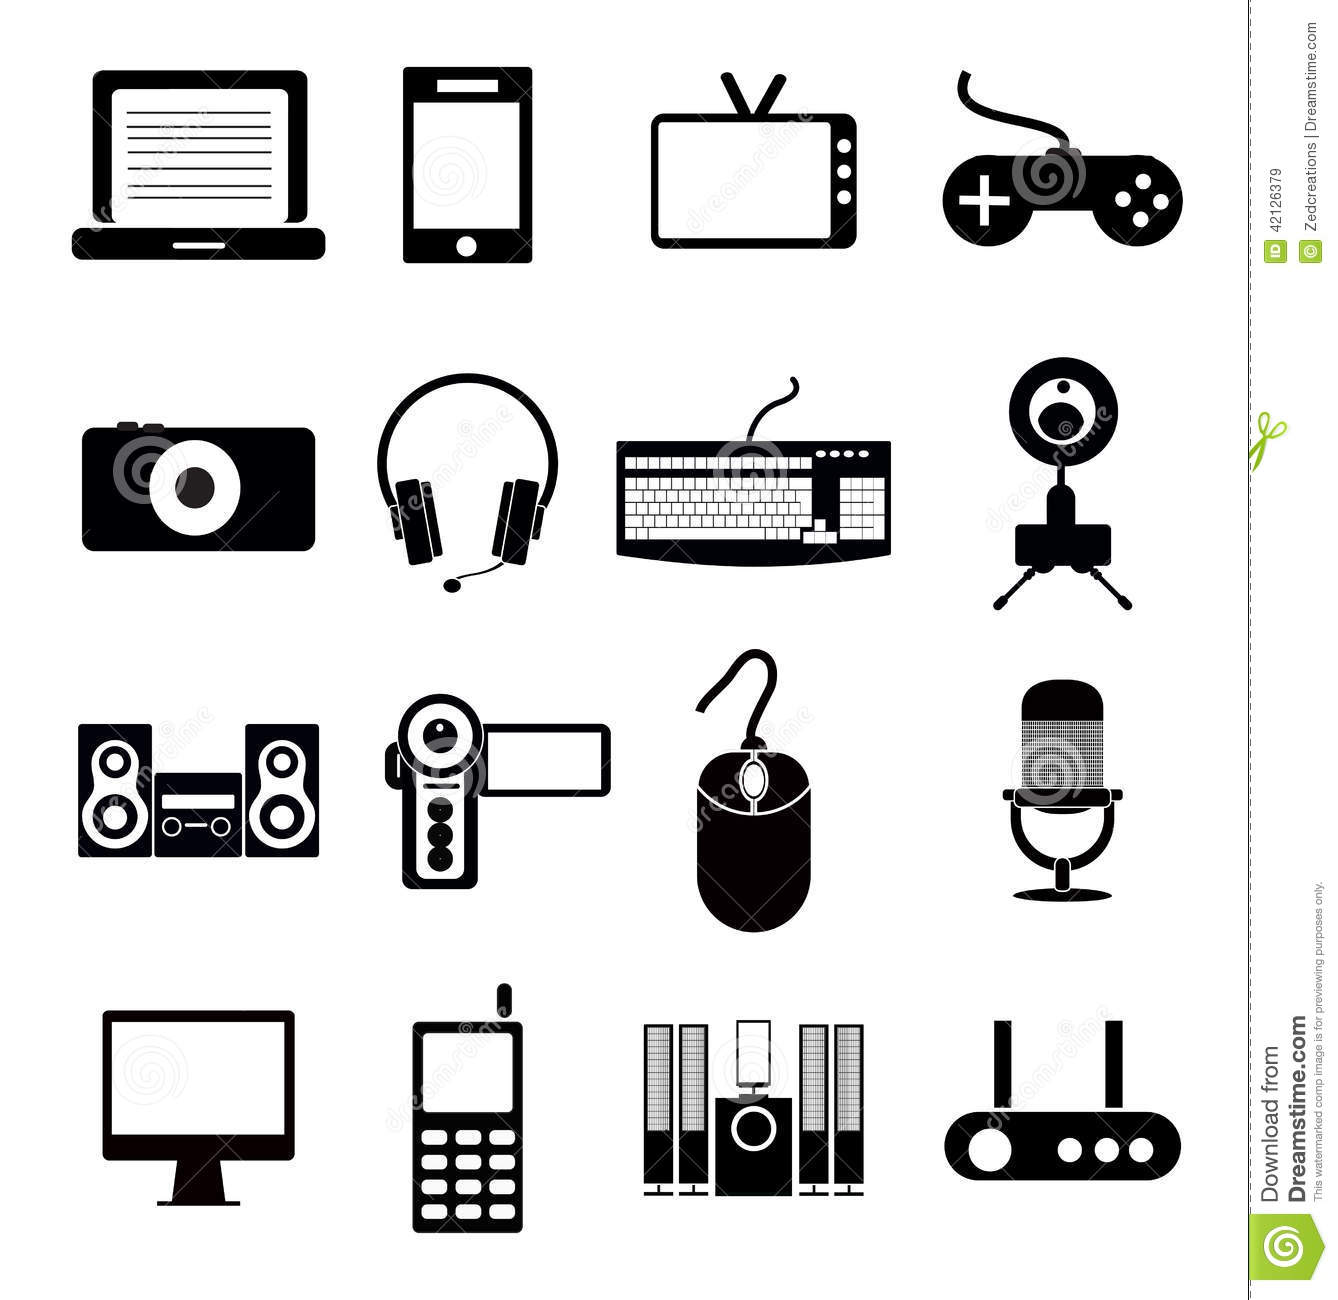 Electronic Icon Set Stock Vector Illustration Of Icons 42126379